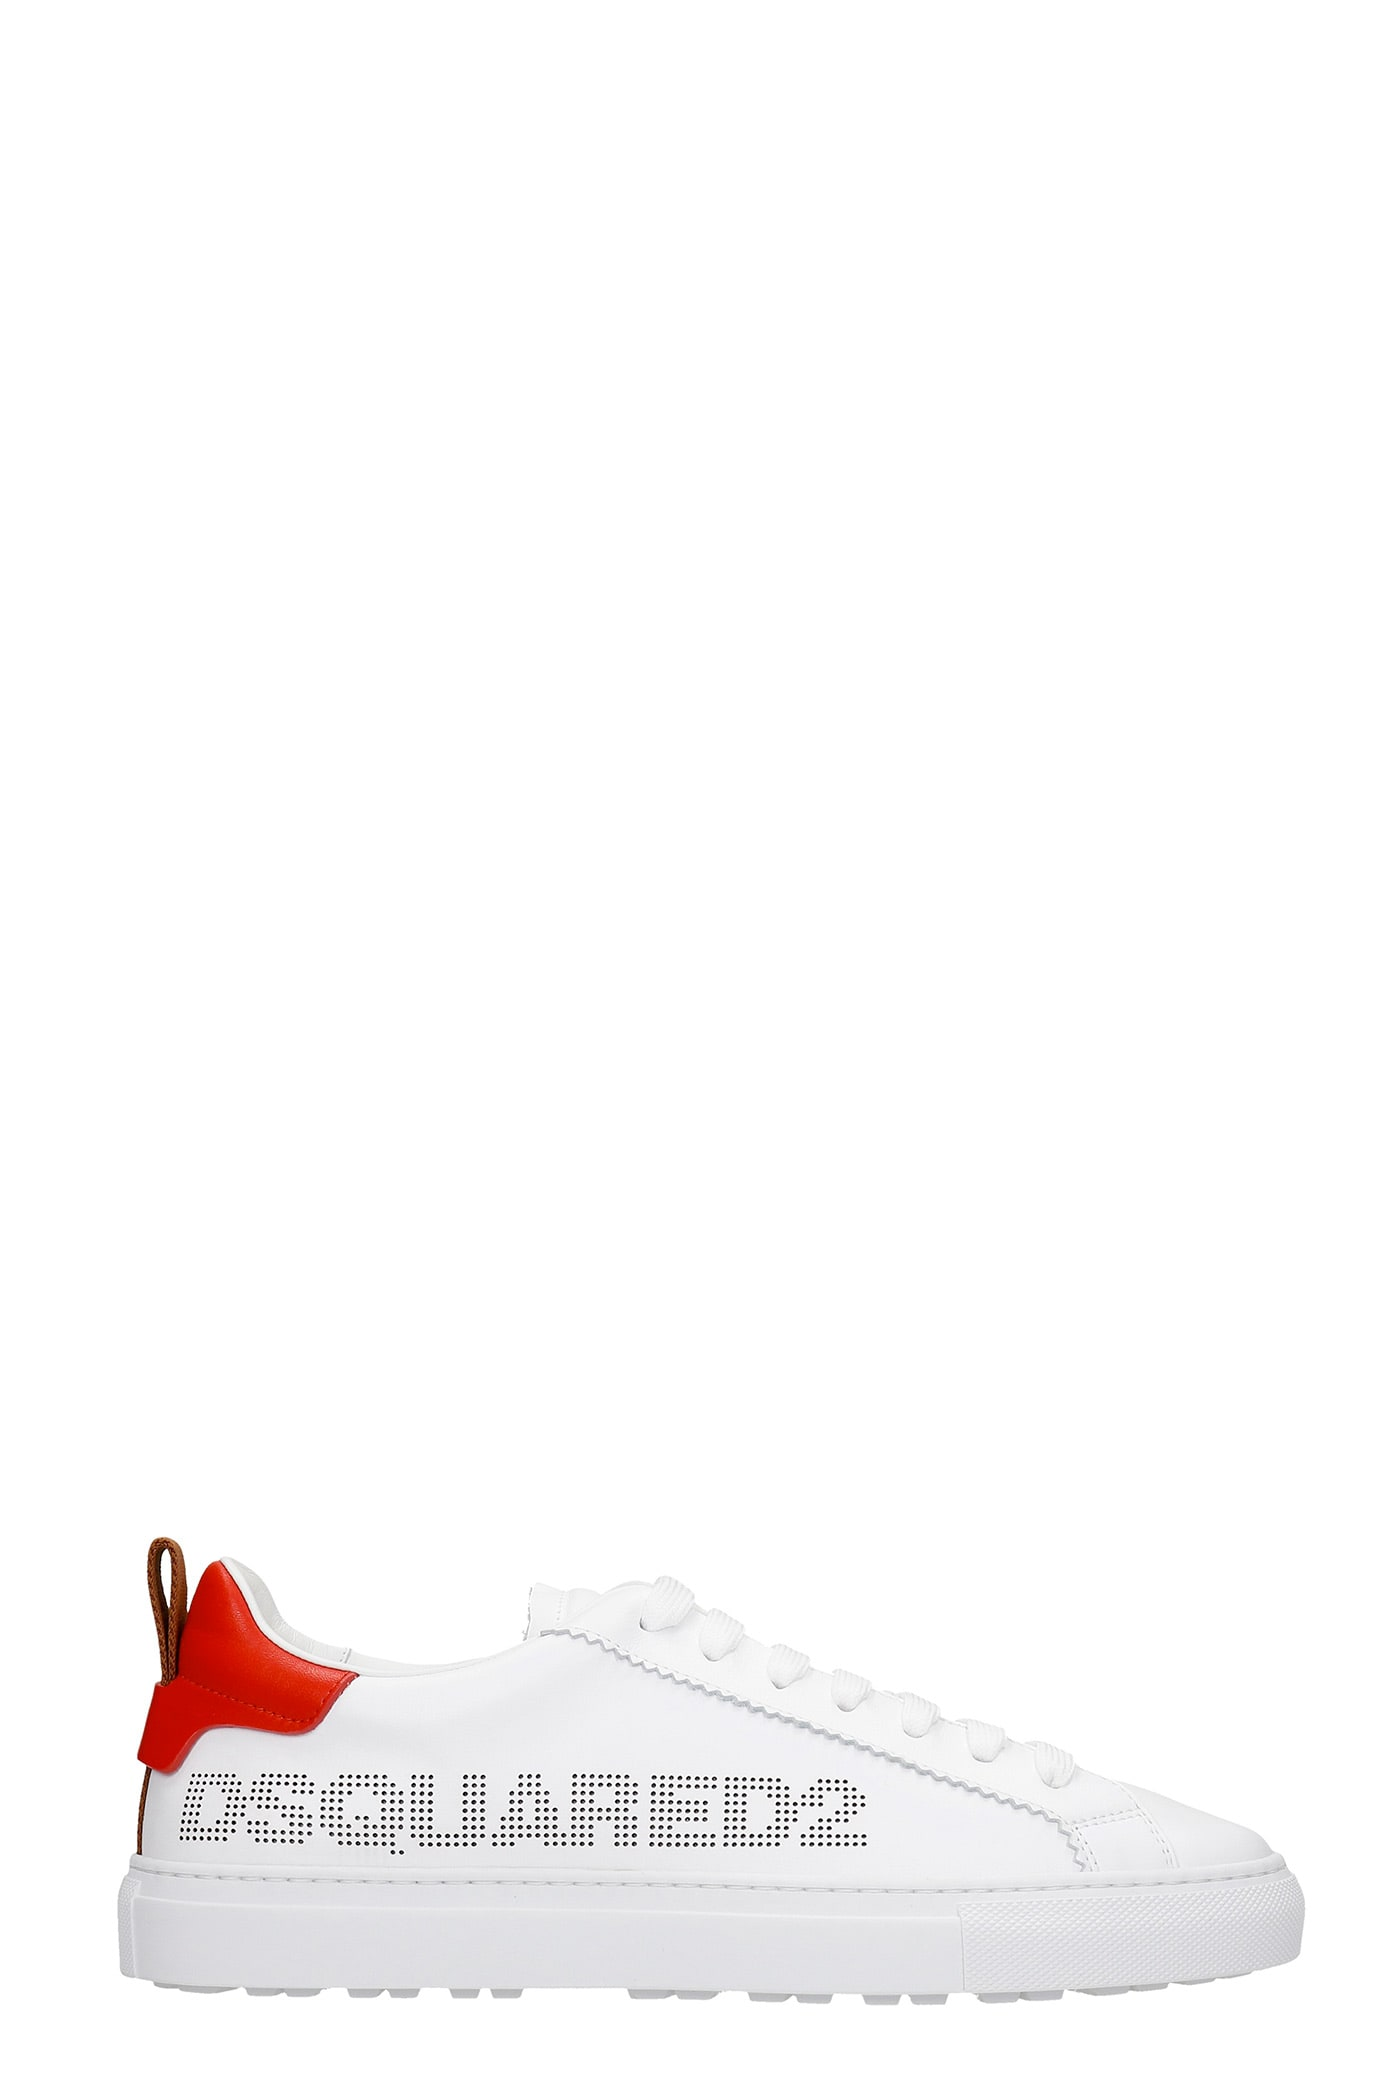 Dsquared2 Leathers SAN DIEGO SNEAKERS IN WHITE LEATHER